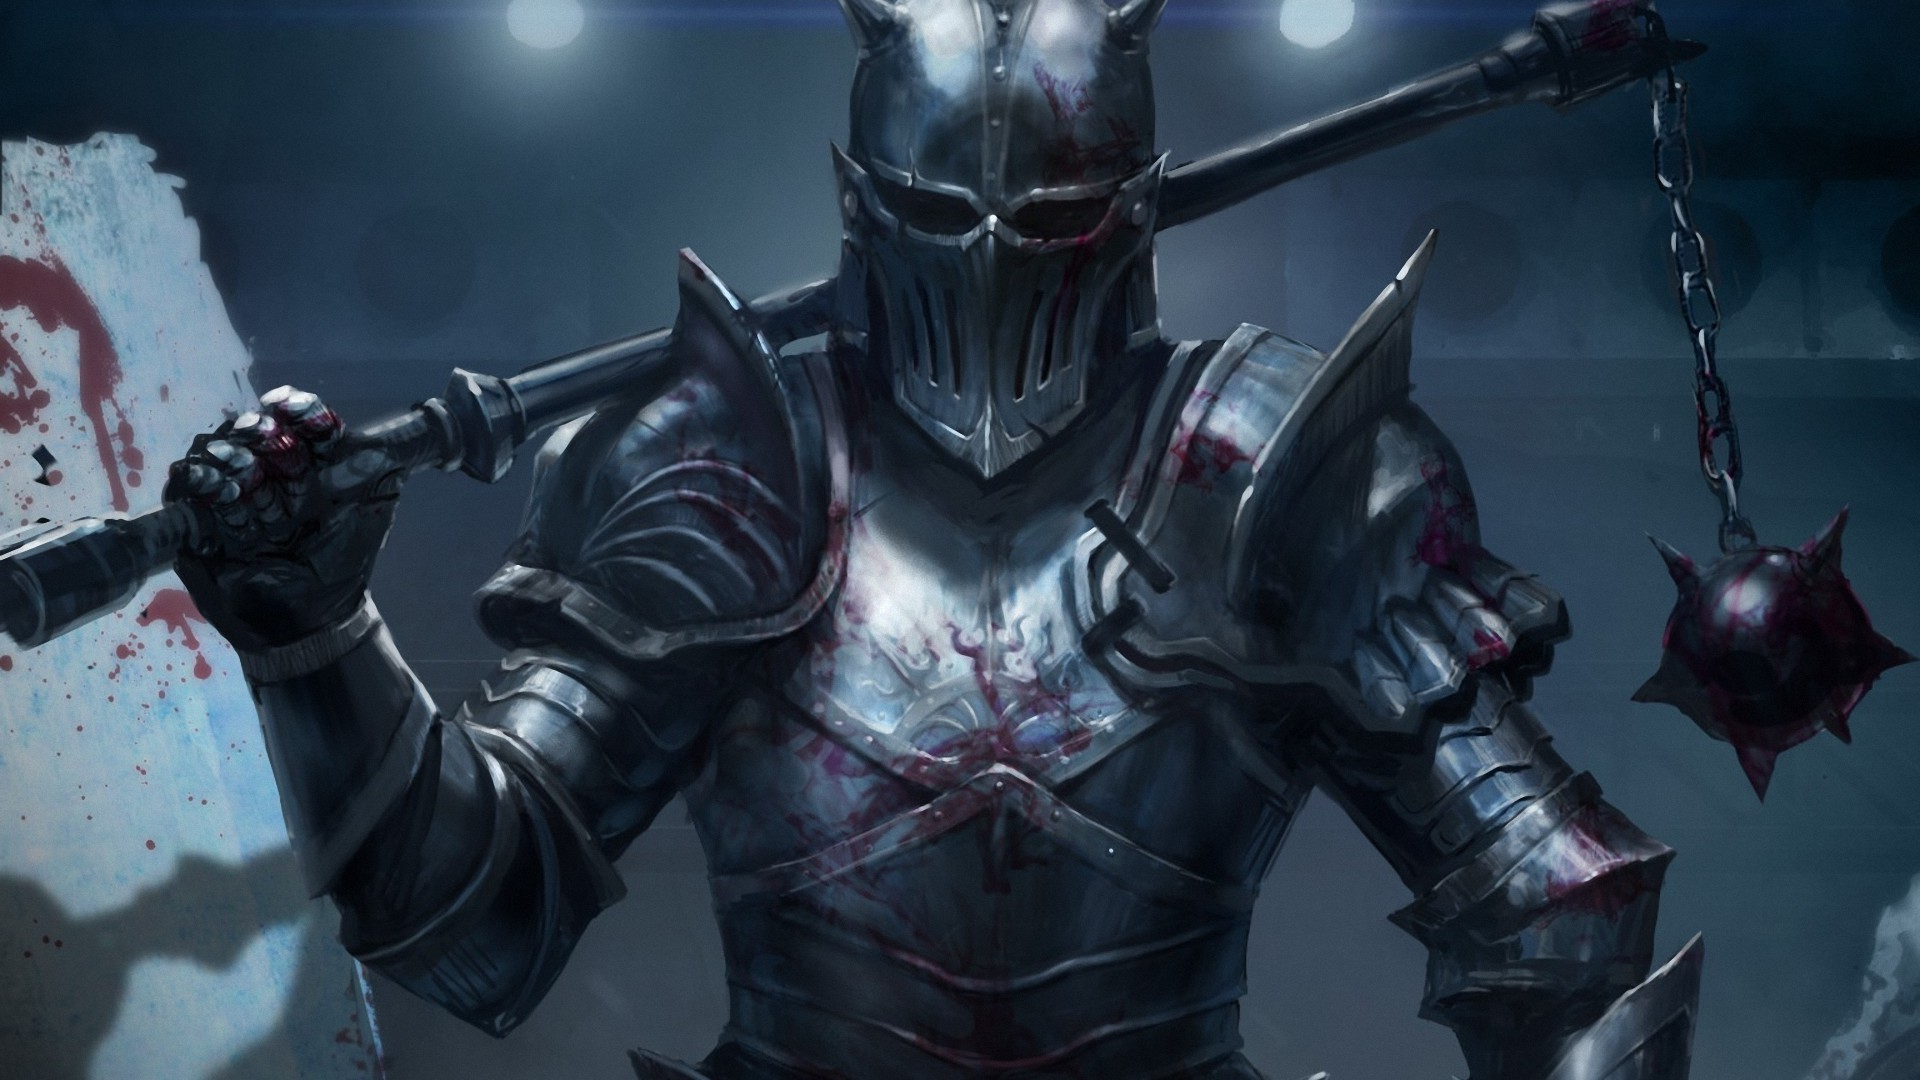 A Knight In Armor Android Wallpapers For Free